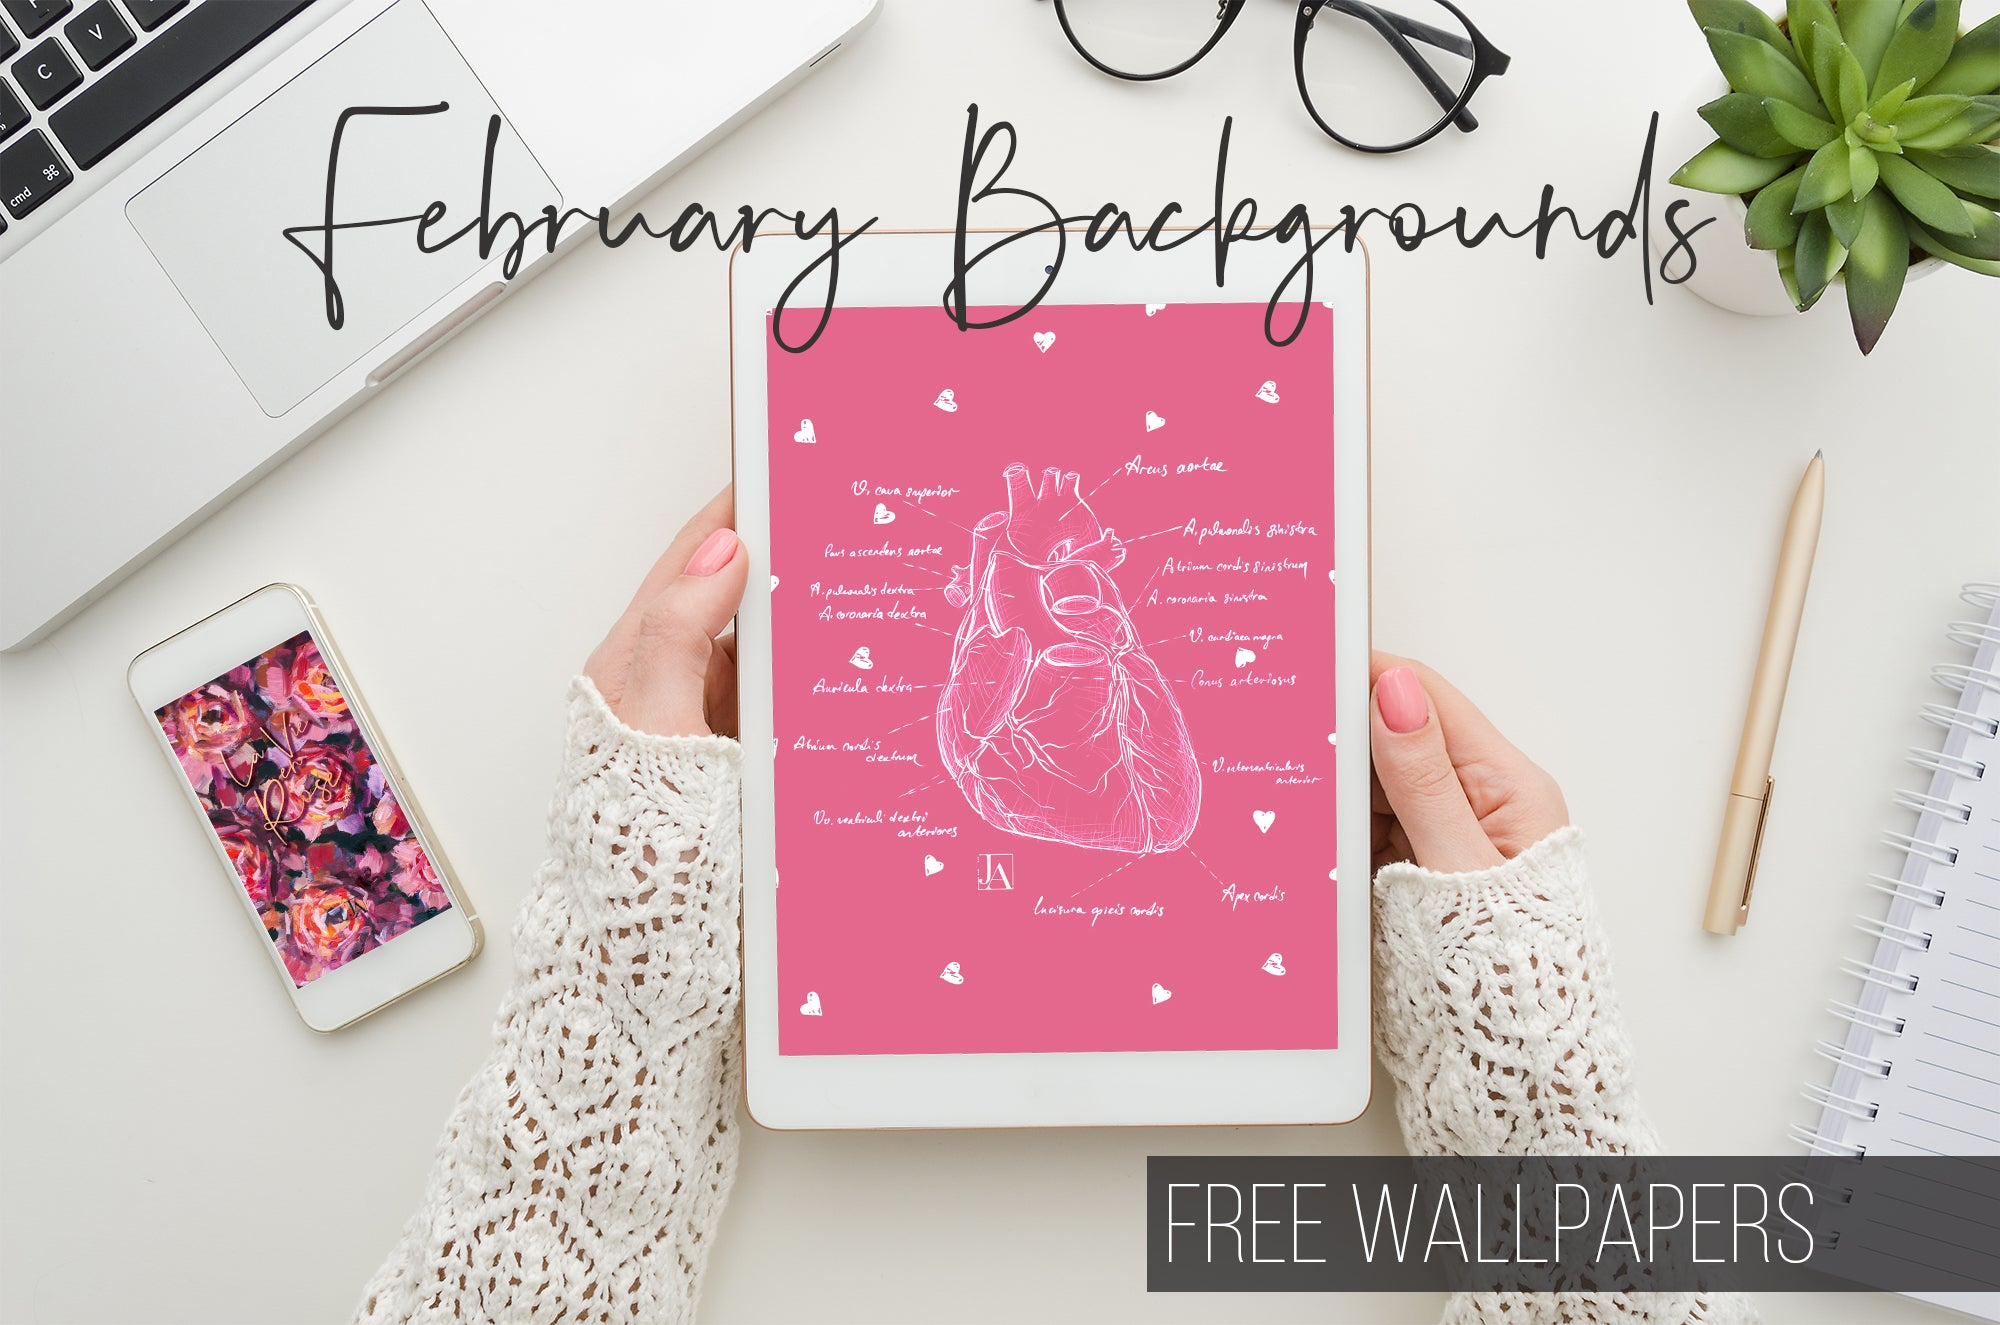 Free February Backgrounds Wallpapers by Jane's Agenda